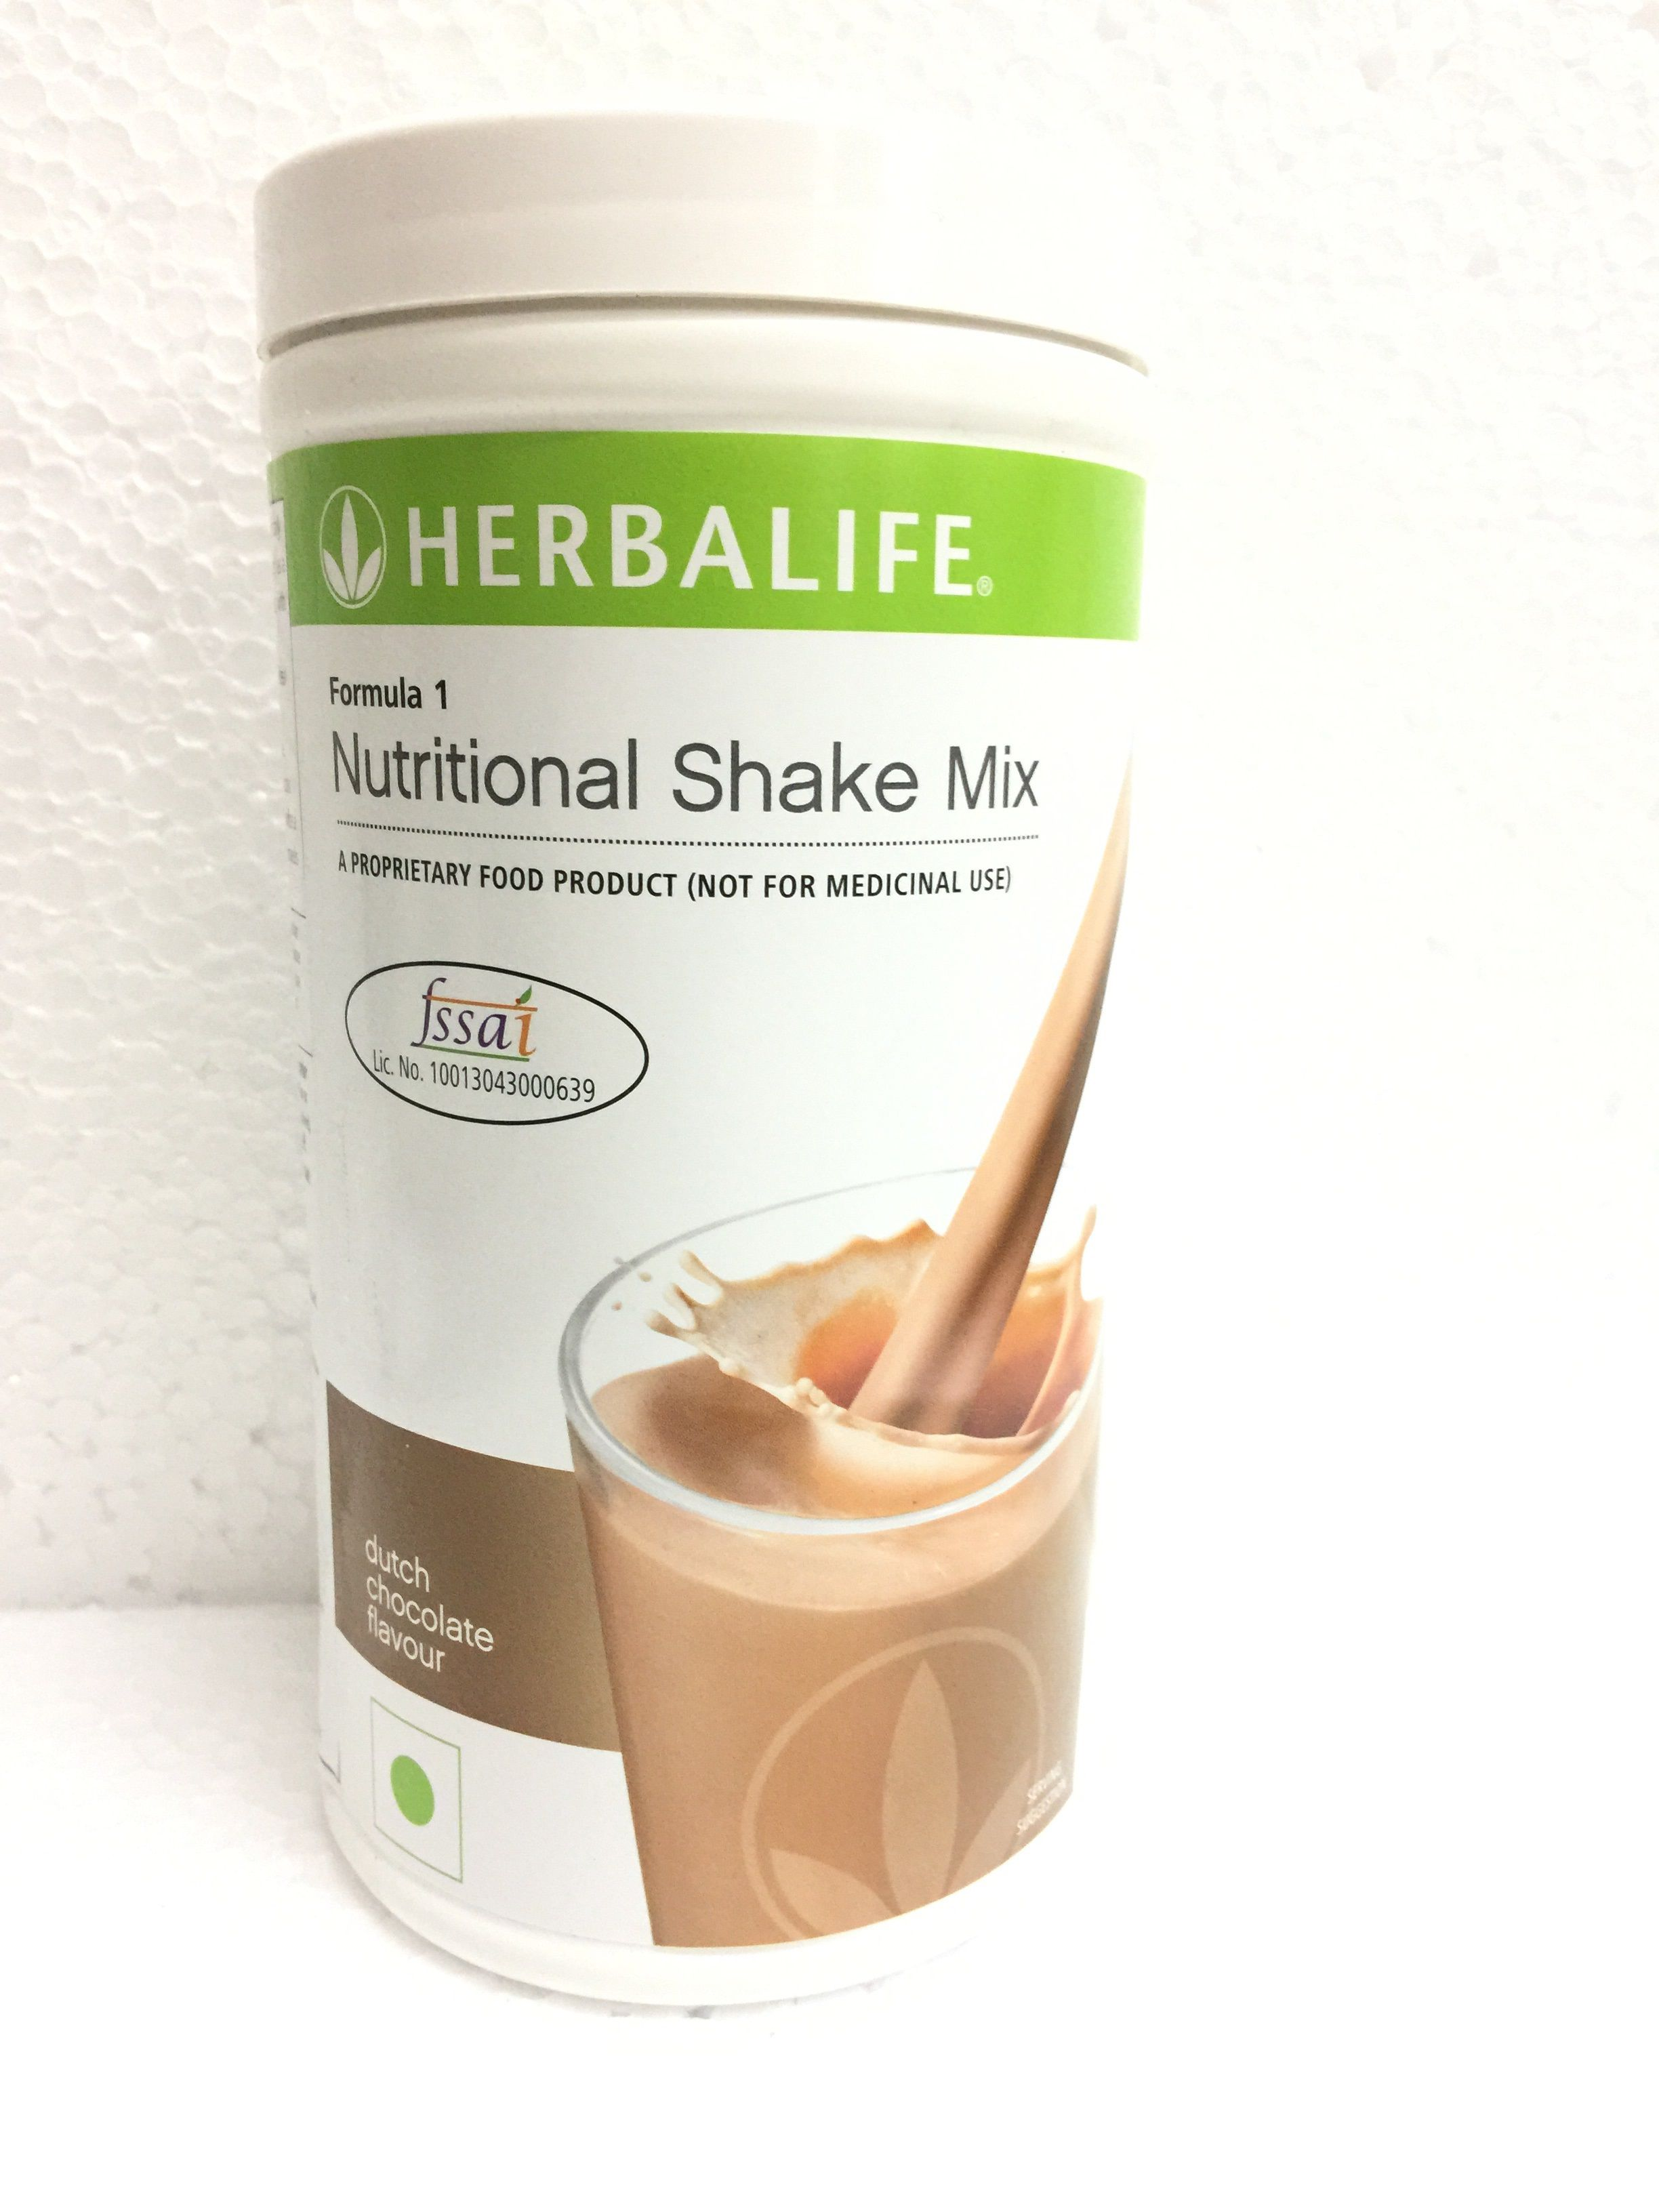 Herbalife Formula 1 Nutritional Shake Mix Buy Herbalife Formula 1